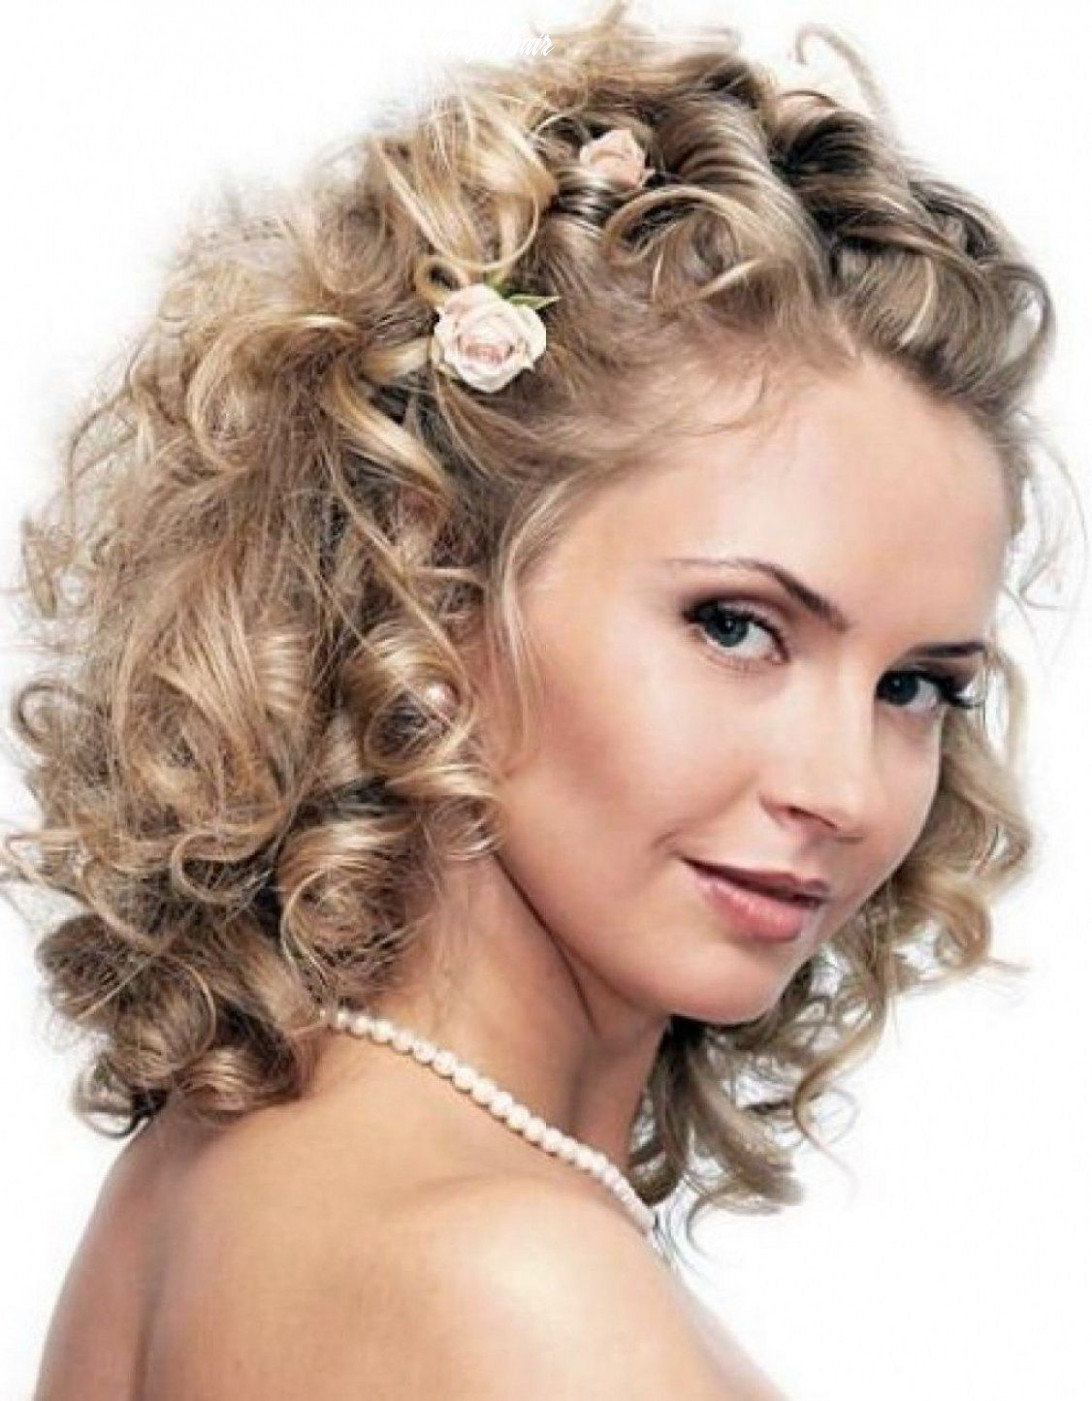 Classic wedding hairstyles medium length hair hairstyle picture